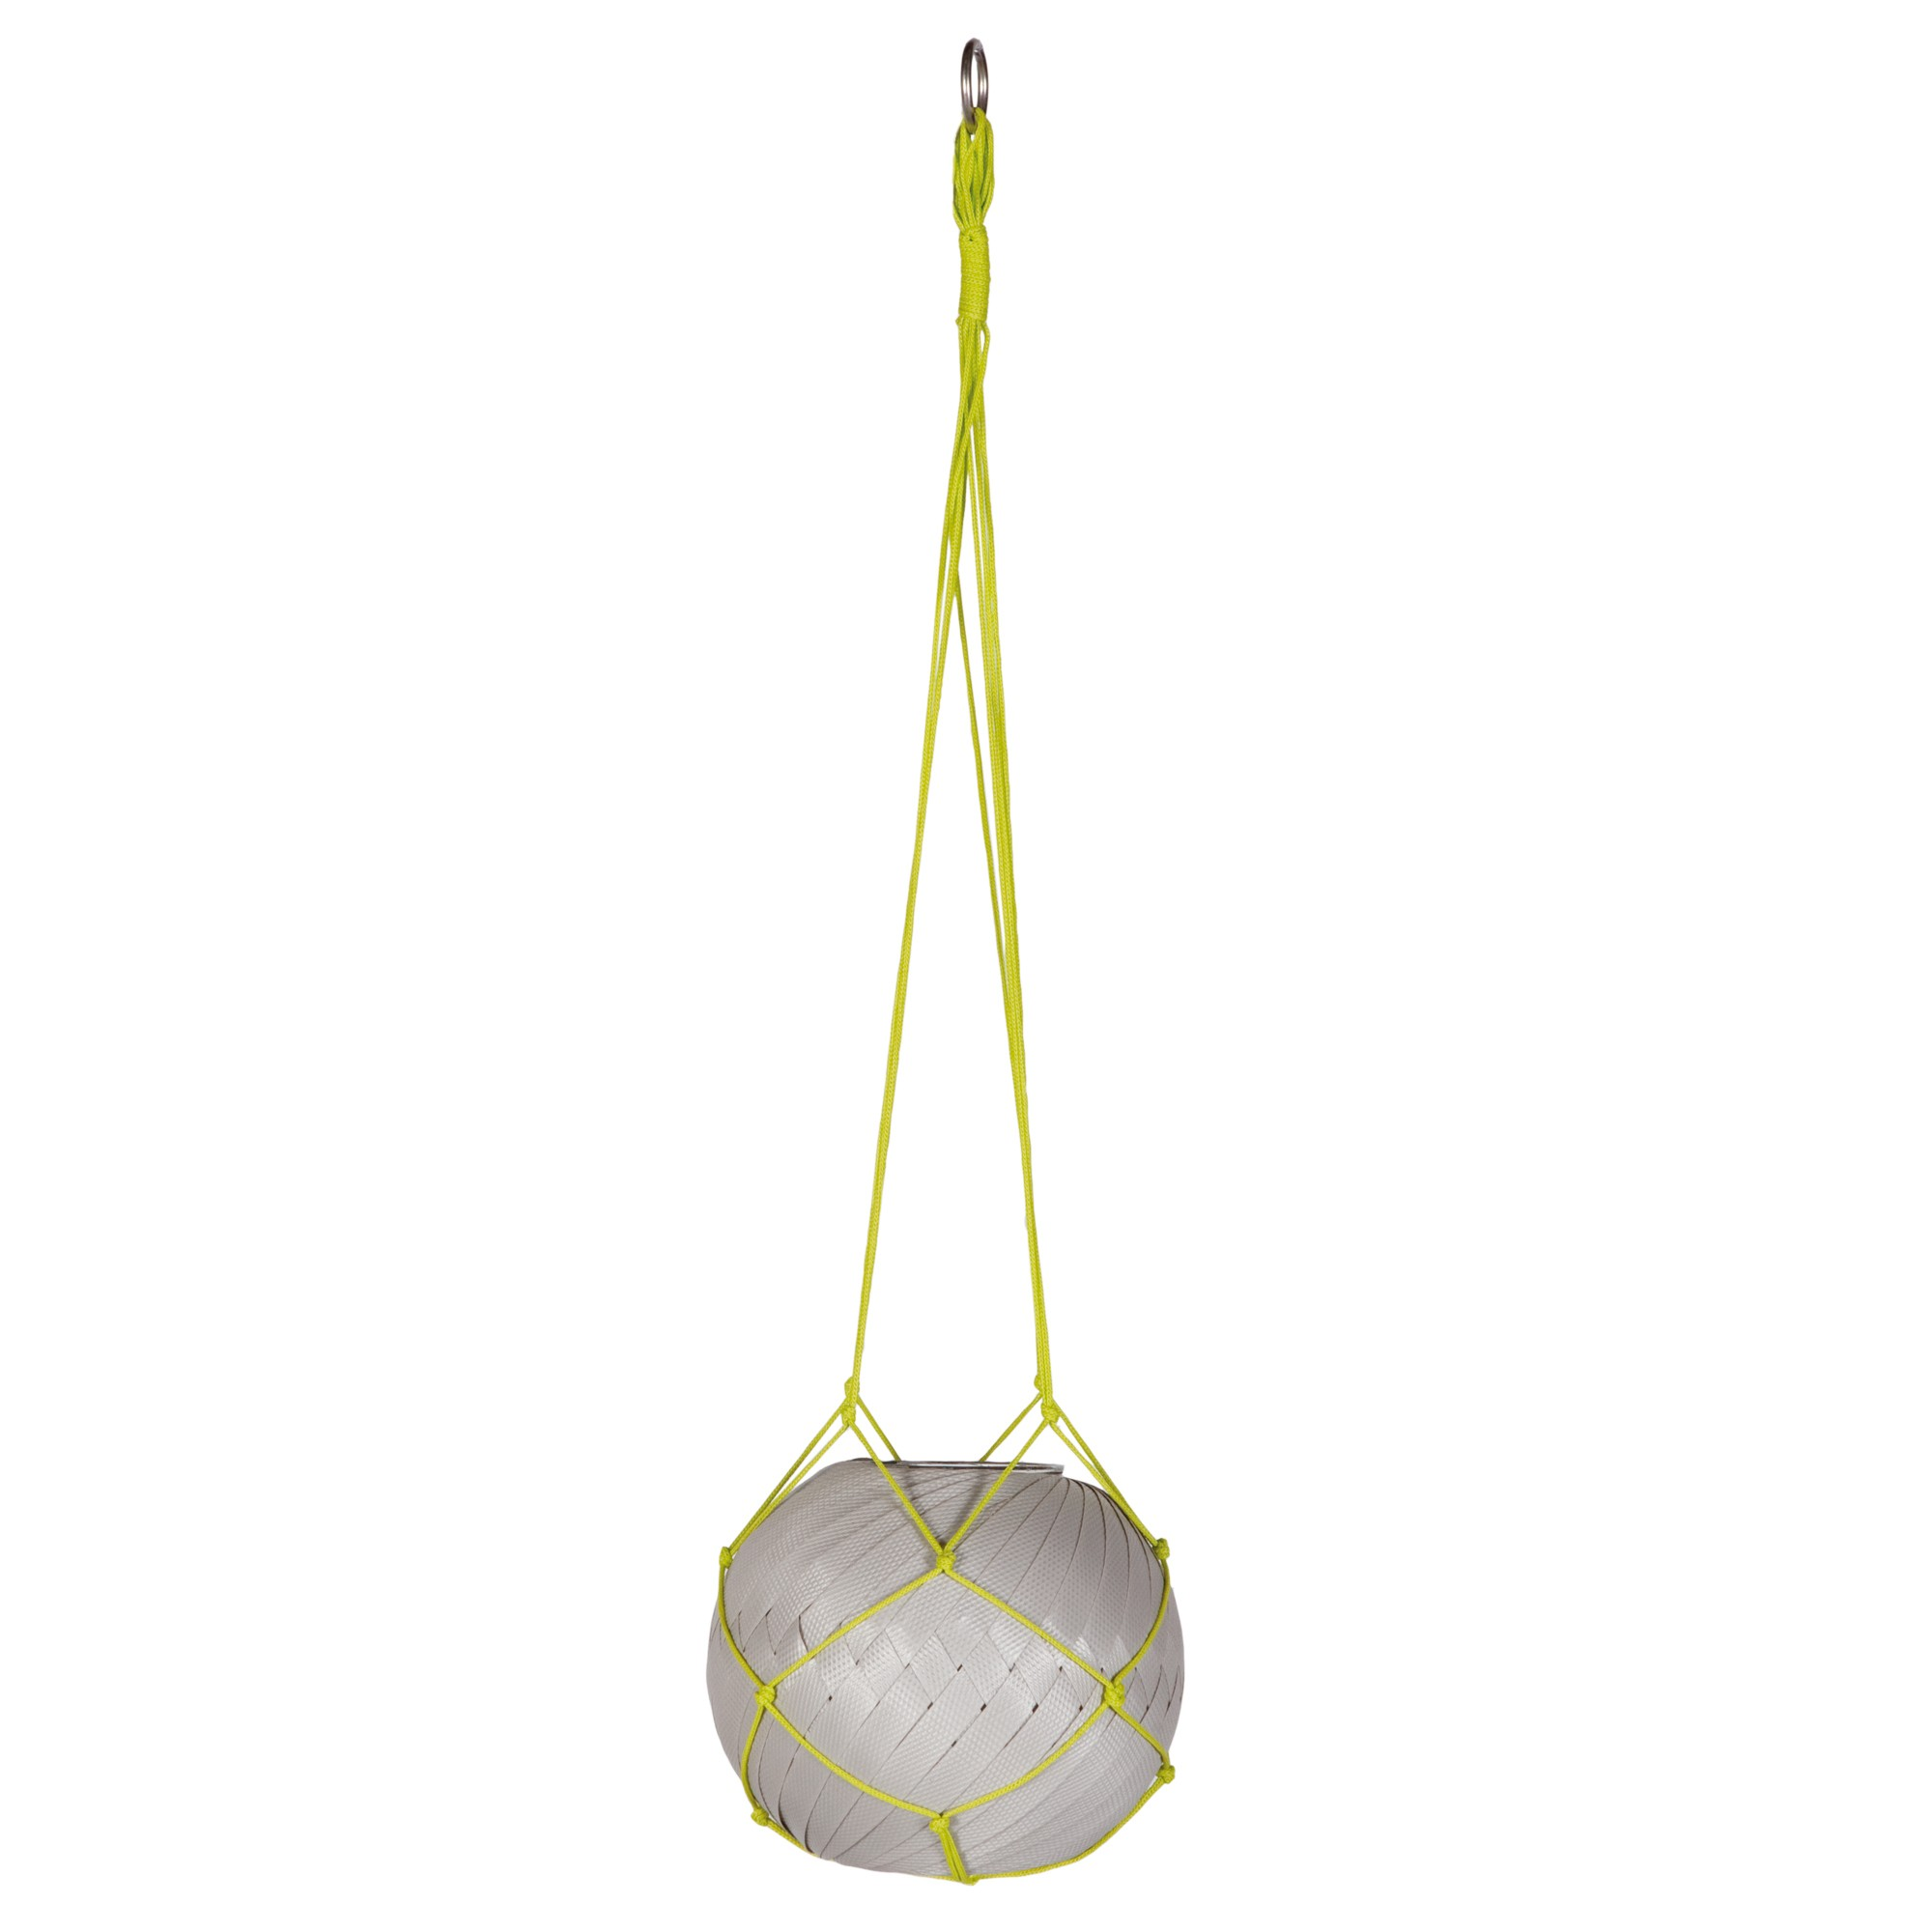 Handed By Basket Swing Concrete-8718439078096-31